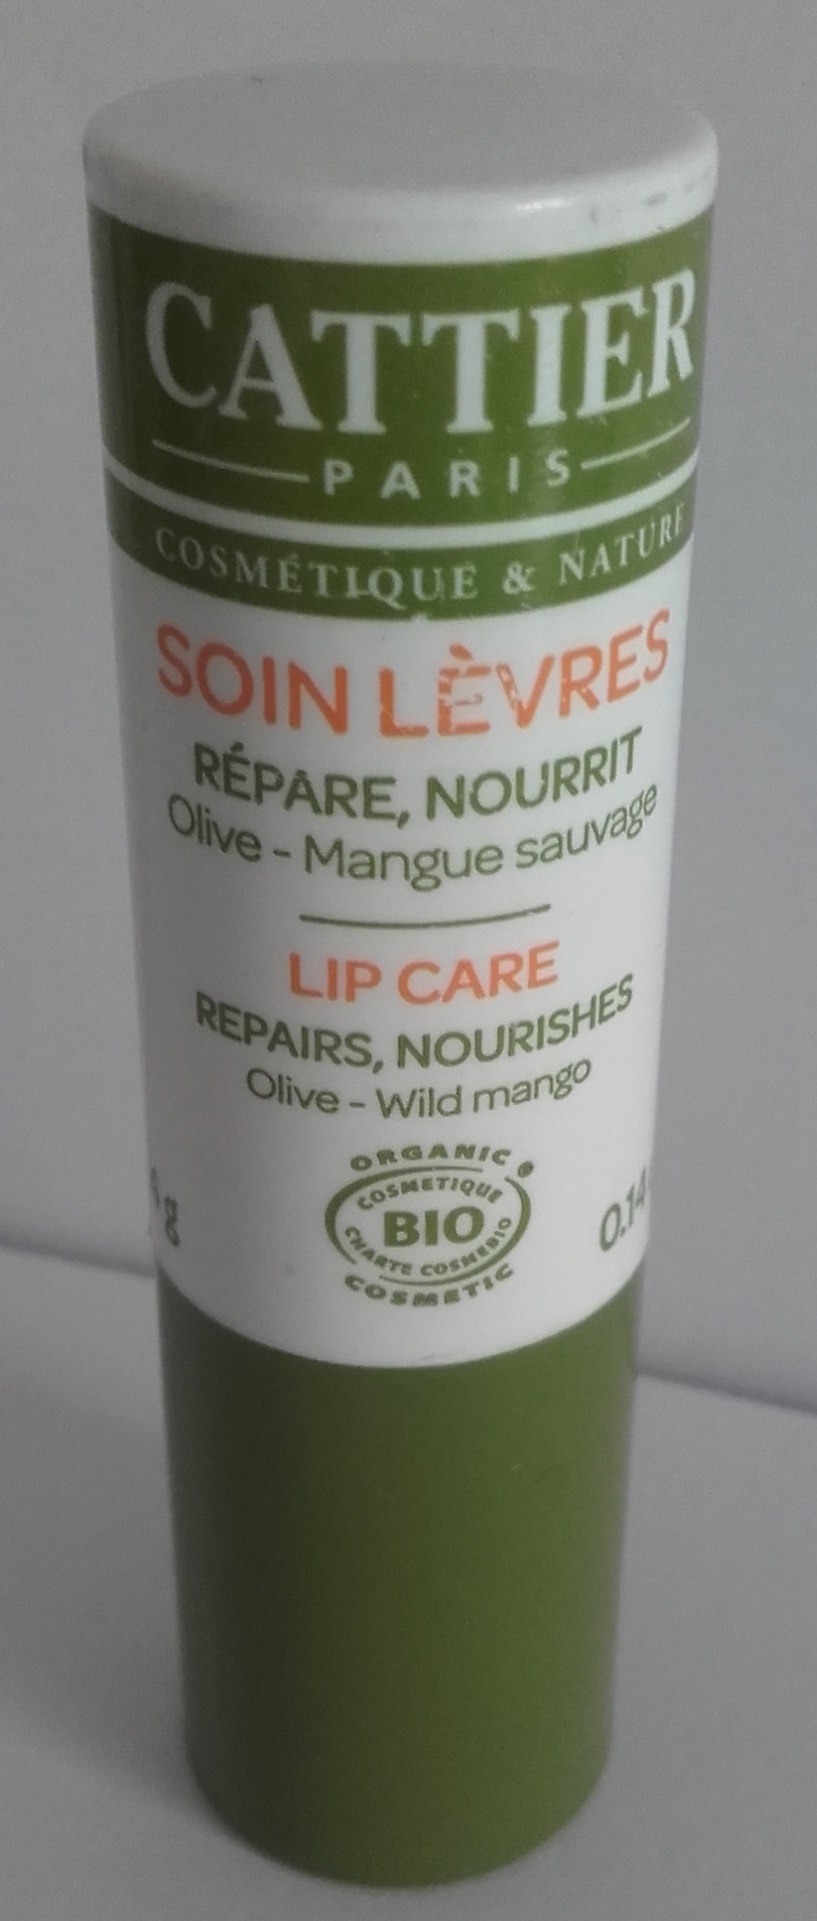 Soin lèvres Olive Mangue sauvage - Product - fr